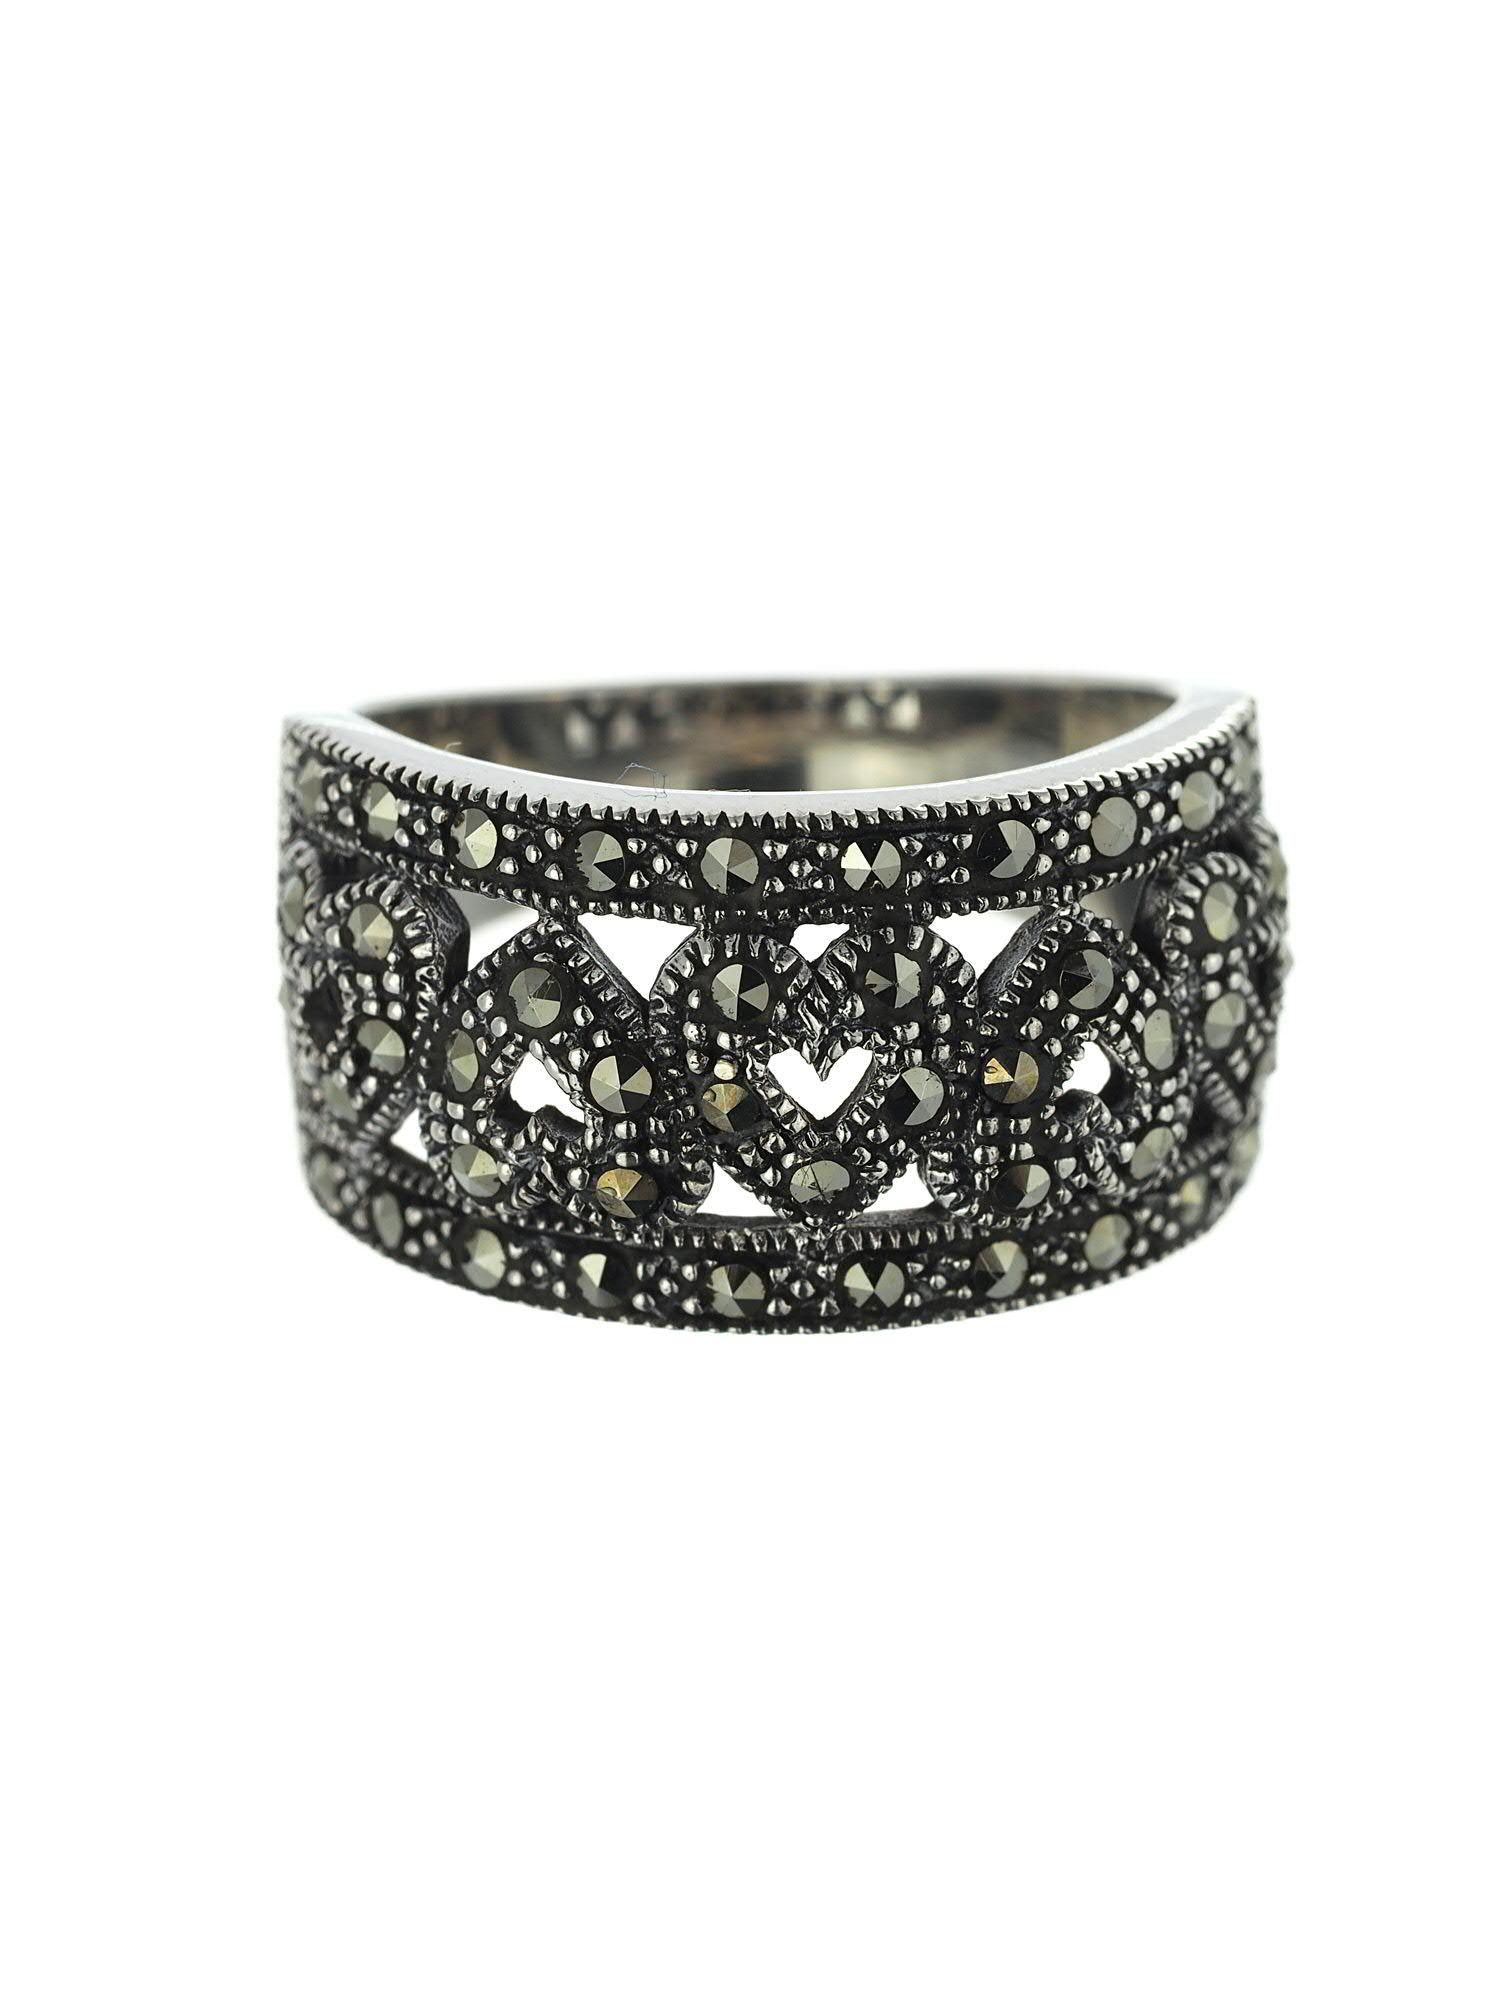 Sterling Silver And Marcasite Band Of Hearts Ring Throughout Best And Newest Band Of Hearts Rings (Gallery 22 of 25)